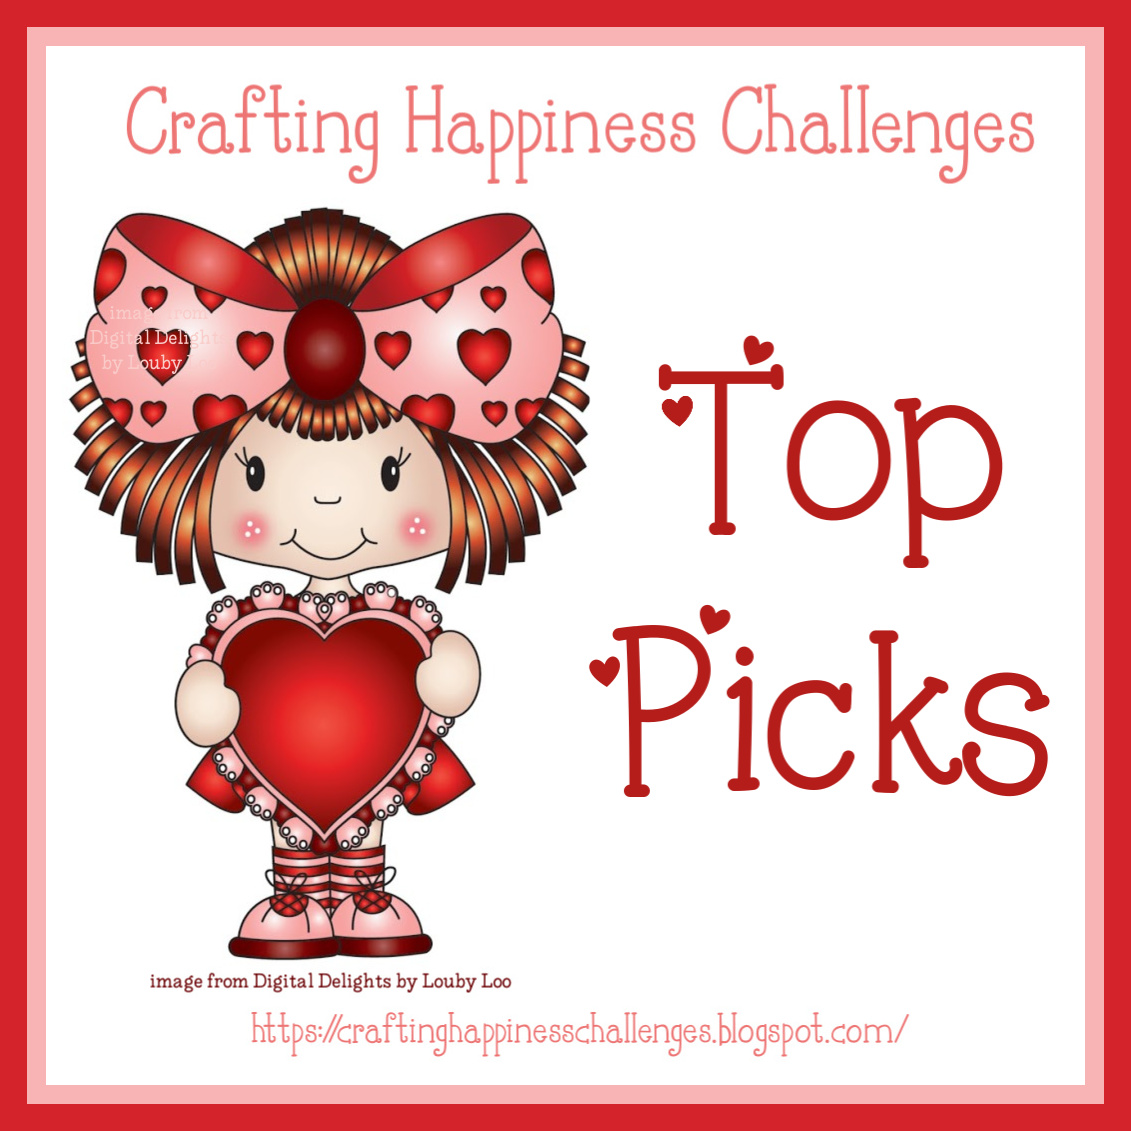 I Won a Top Pick at Crafting Happiness